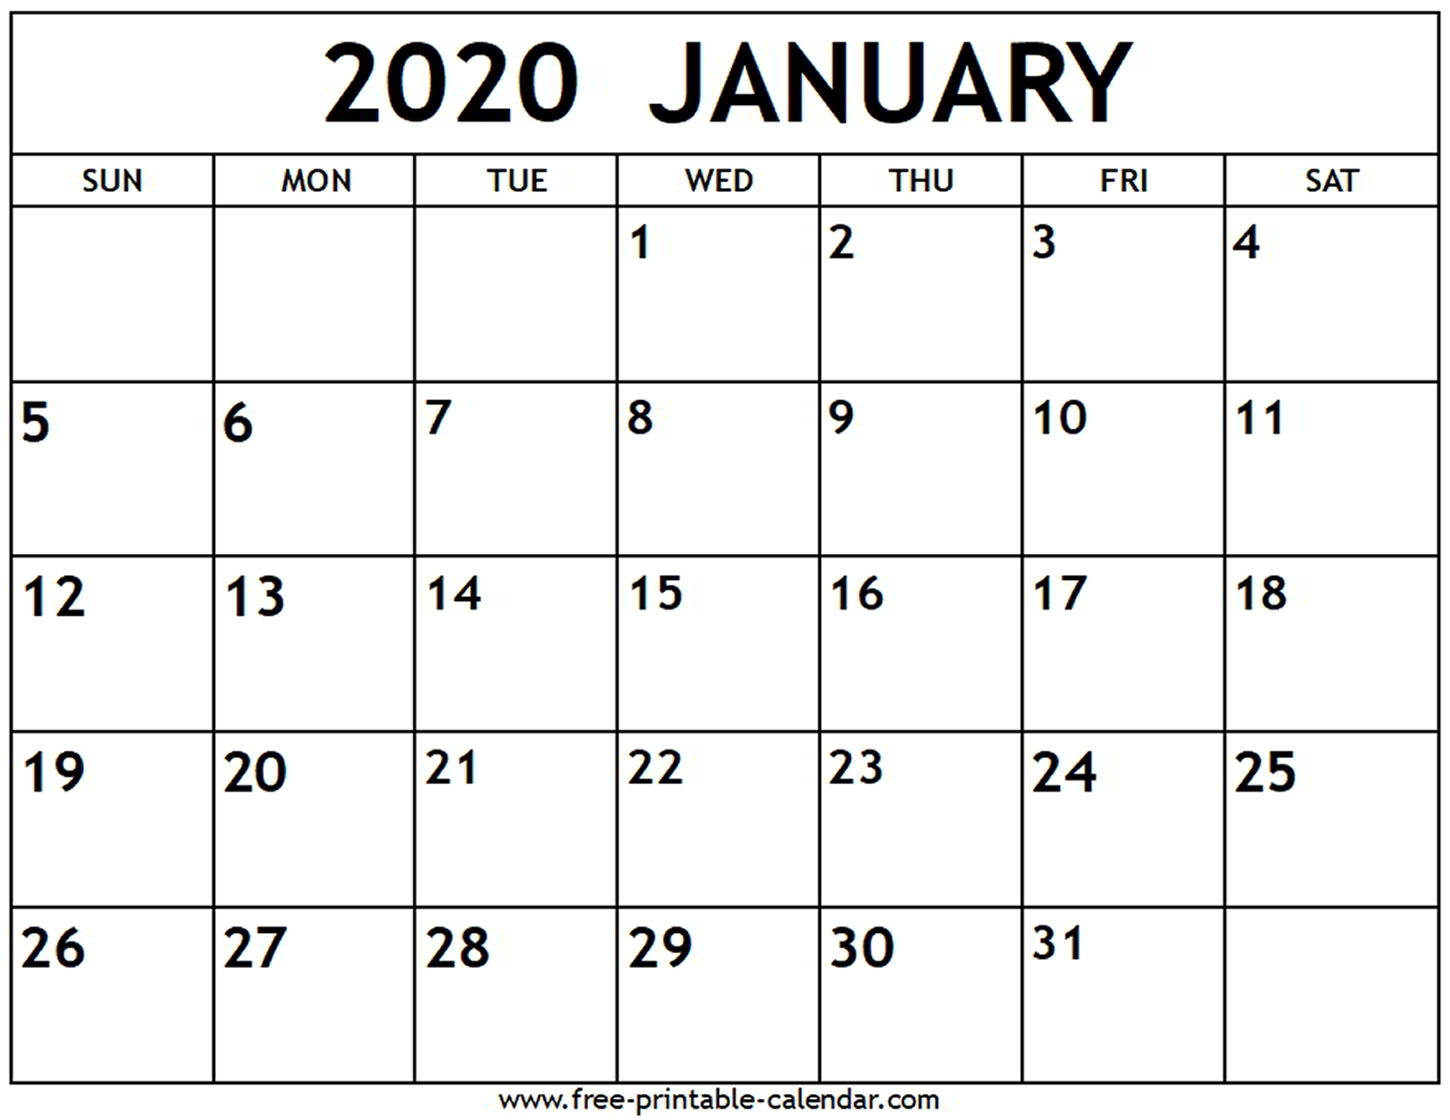 January 2020 Calendar - Free-Printable-Calendar in Print Free Calendars Without Downloading